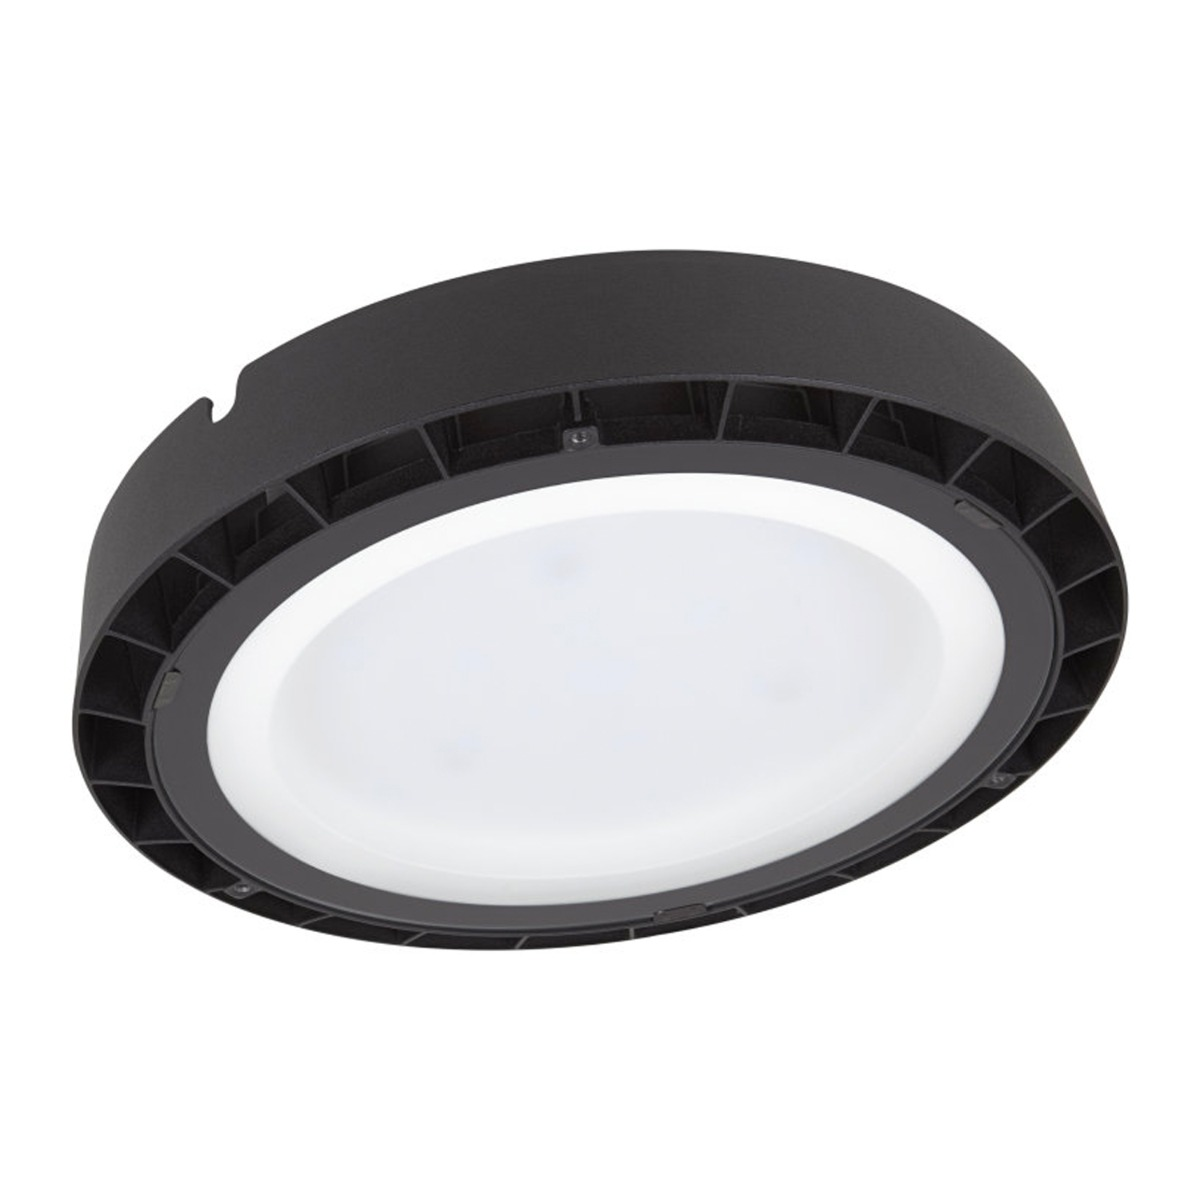 Ledvance LED High Bay Value 150W 4000K IP65 16000lm 100D | Koel Wit - Vervangt 250W